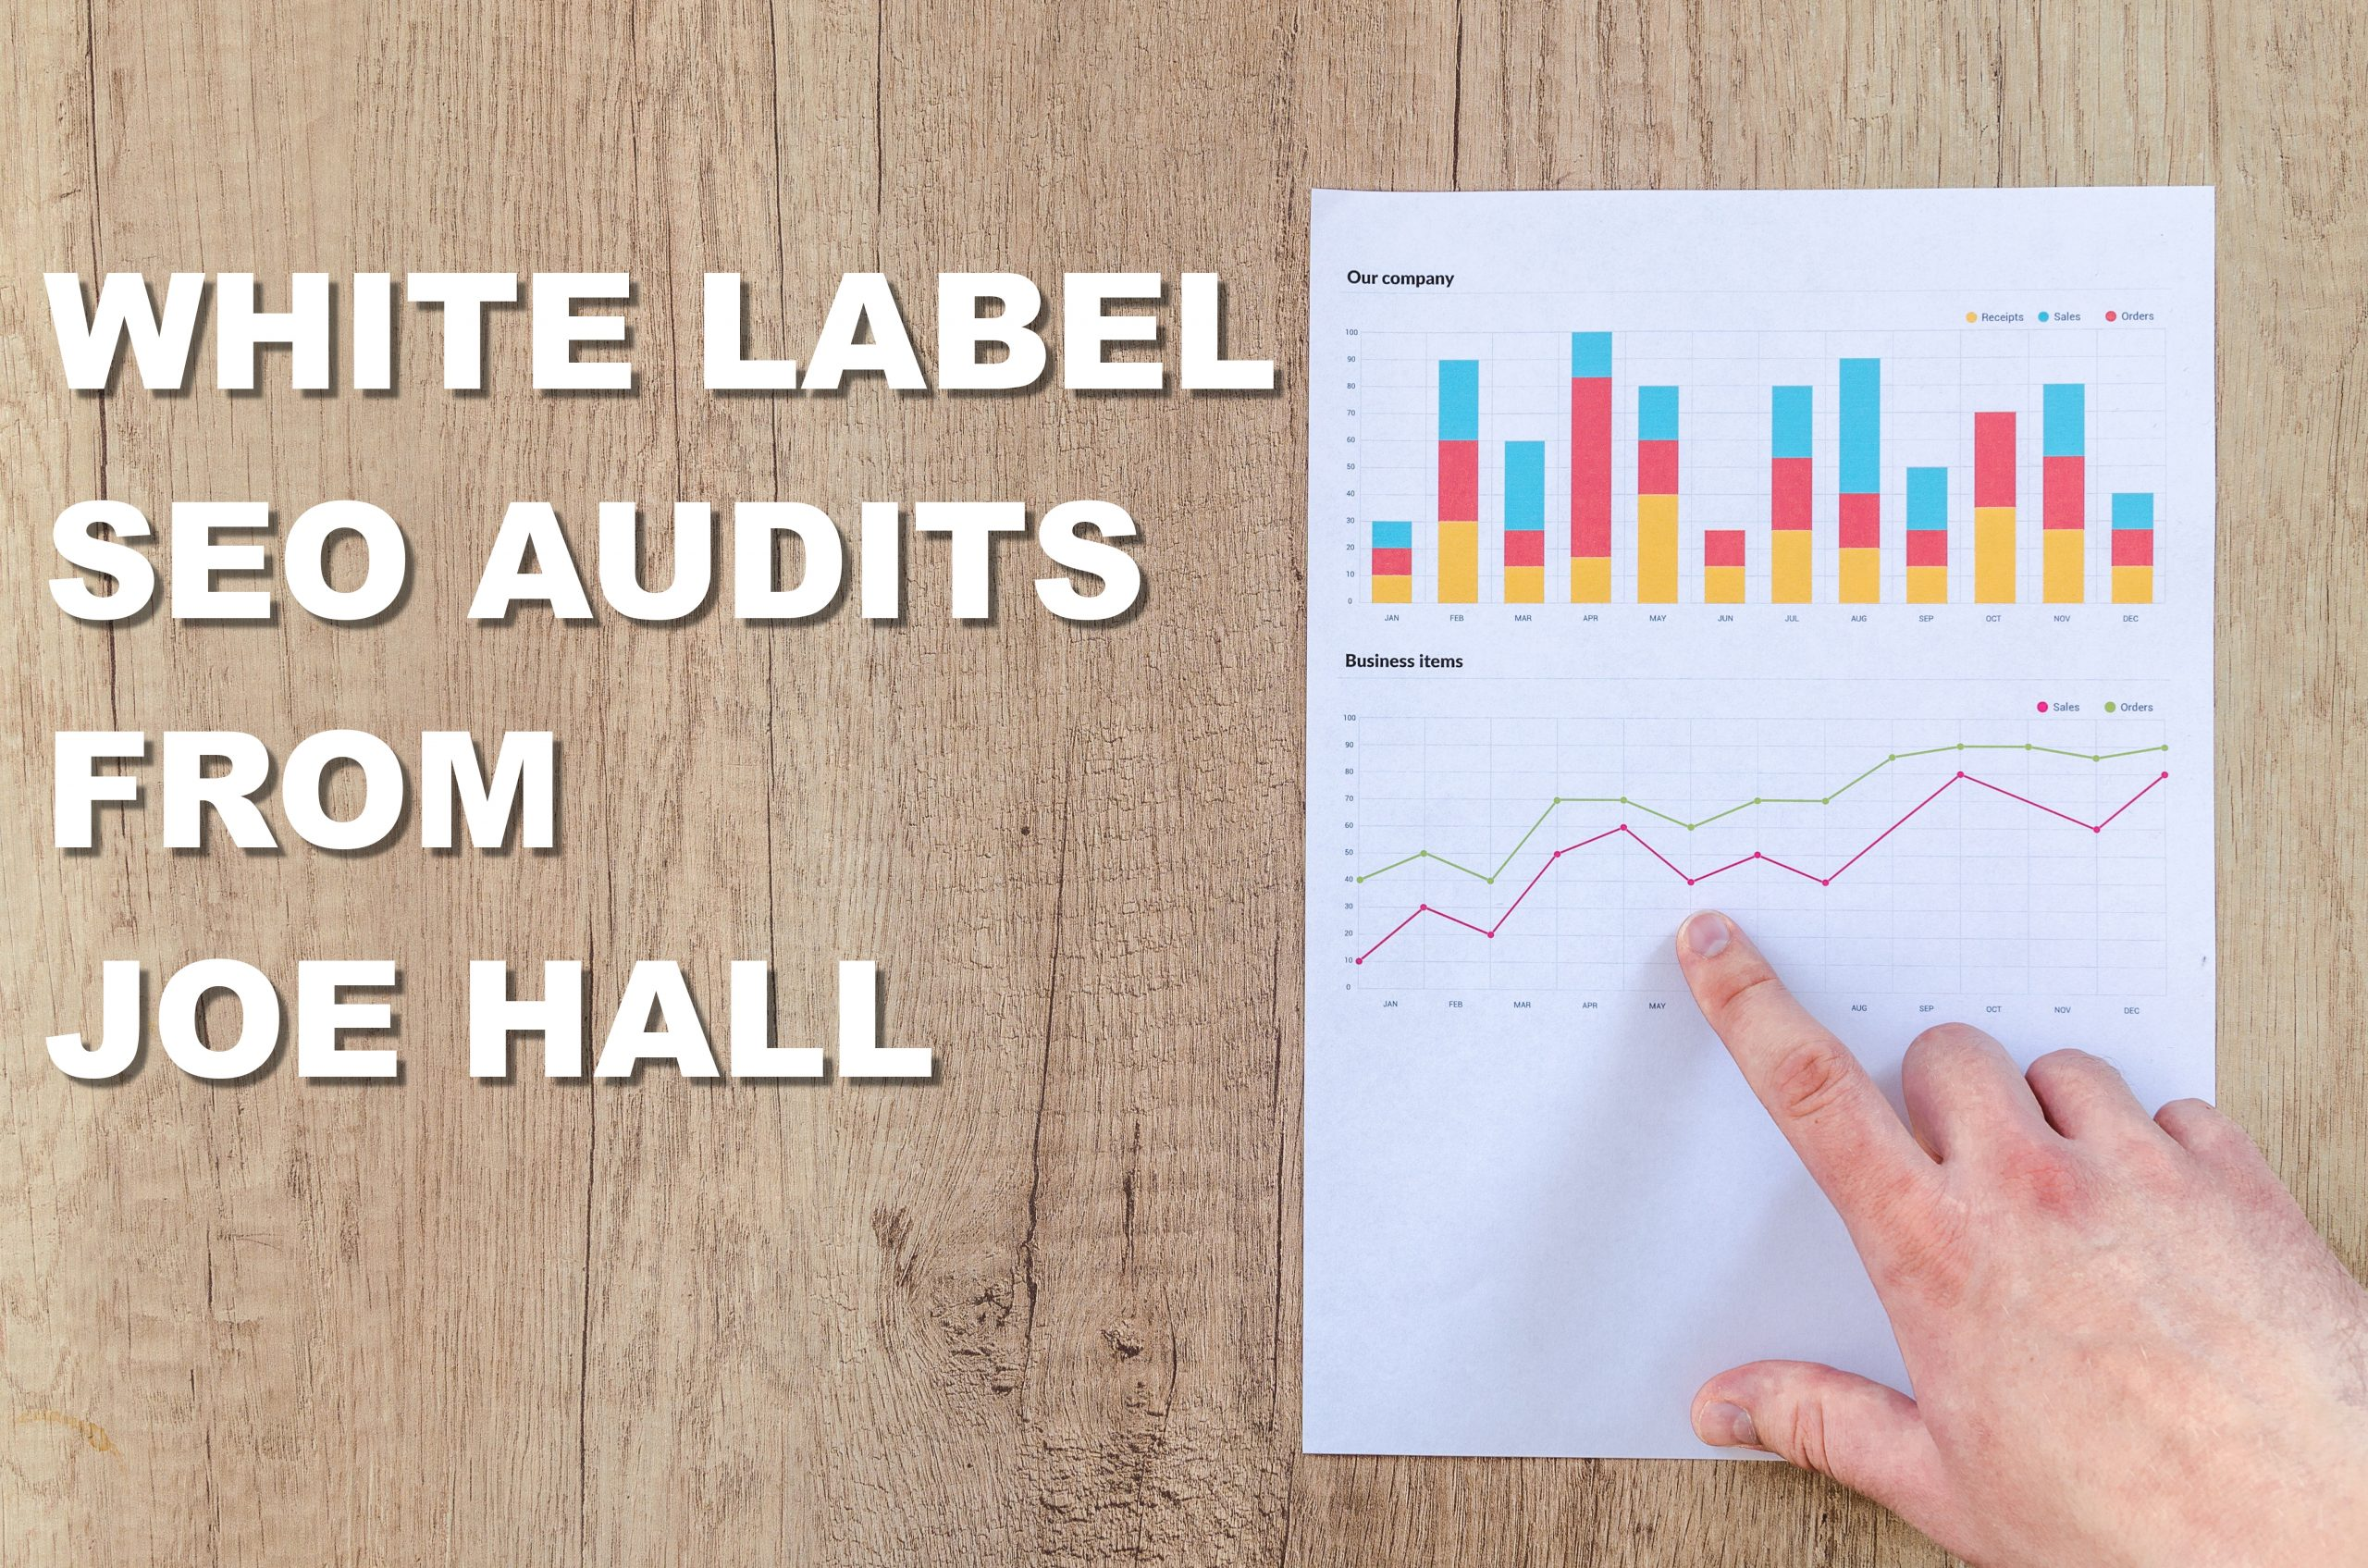 """White Label SEO AUDITS from Joe Hall"" In white block letters beside a paper report with several charts and an index finger pointing at one of the charts with a wood background."